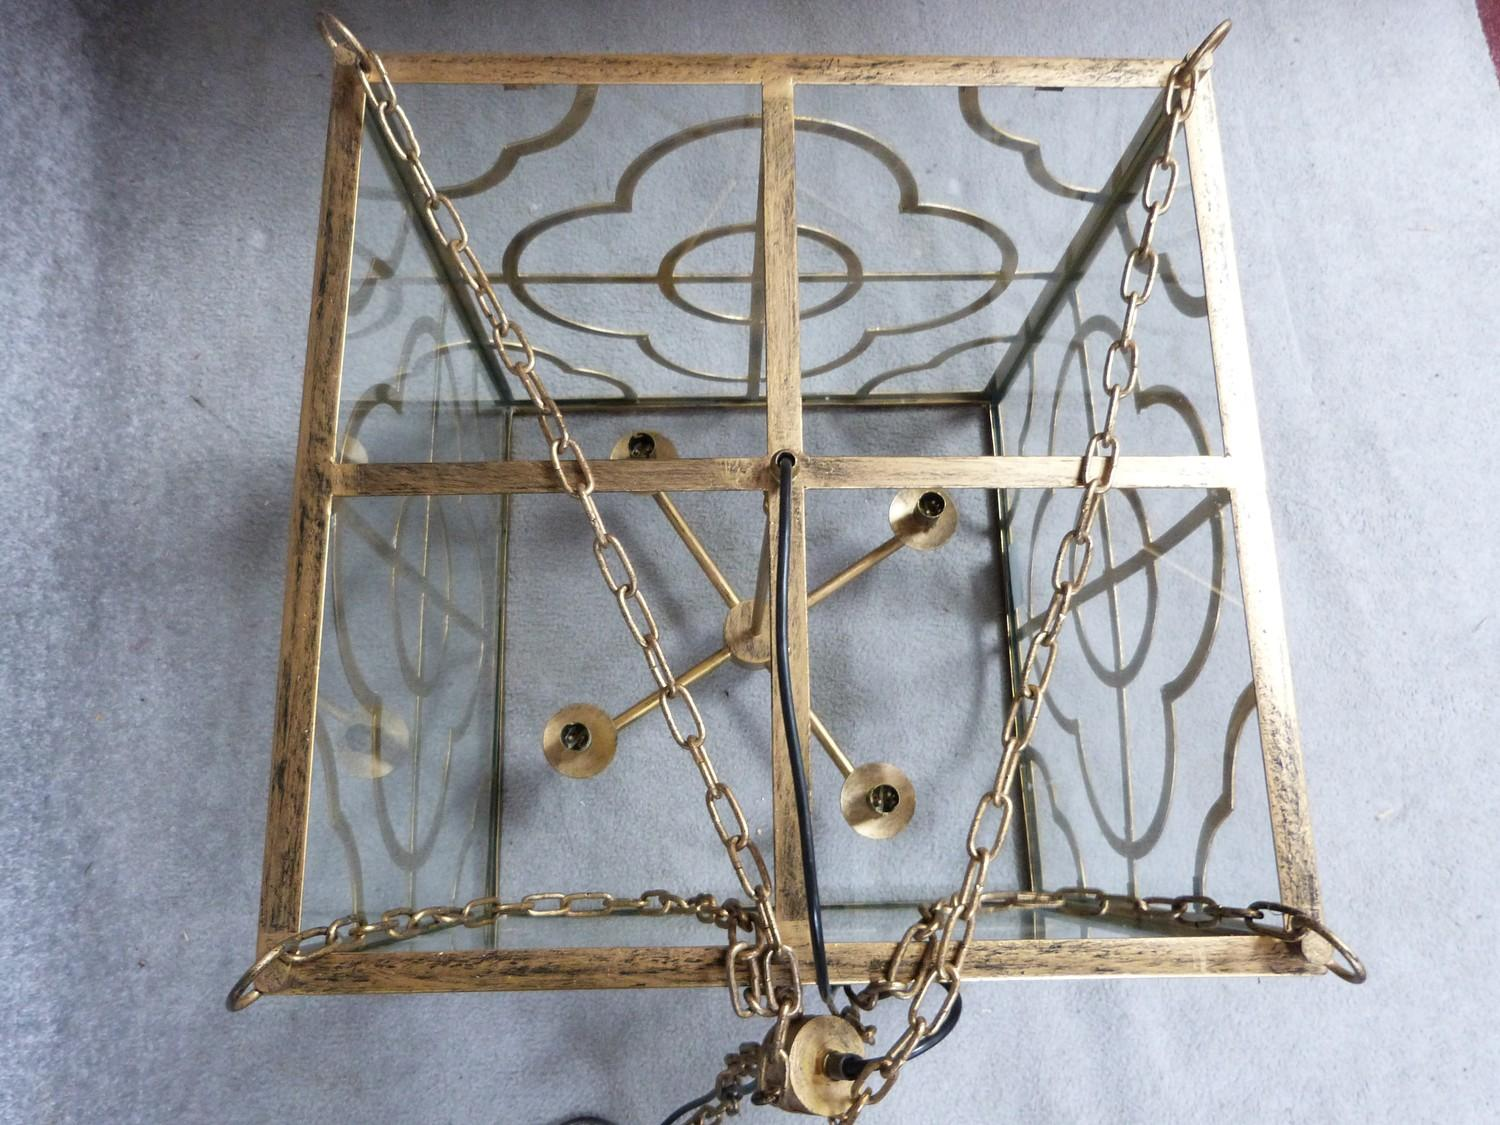 A Julian Chichester gold 'Anna' design pierced metal hanging ceiling lantern with stylised floral - Image 6 of 8